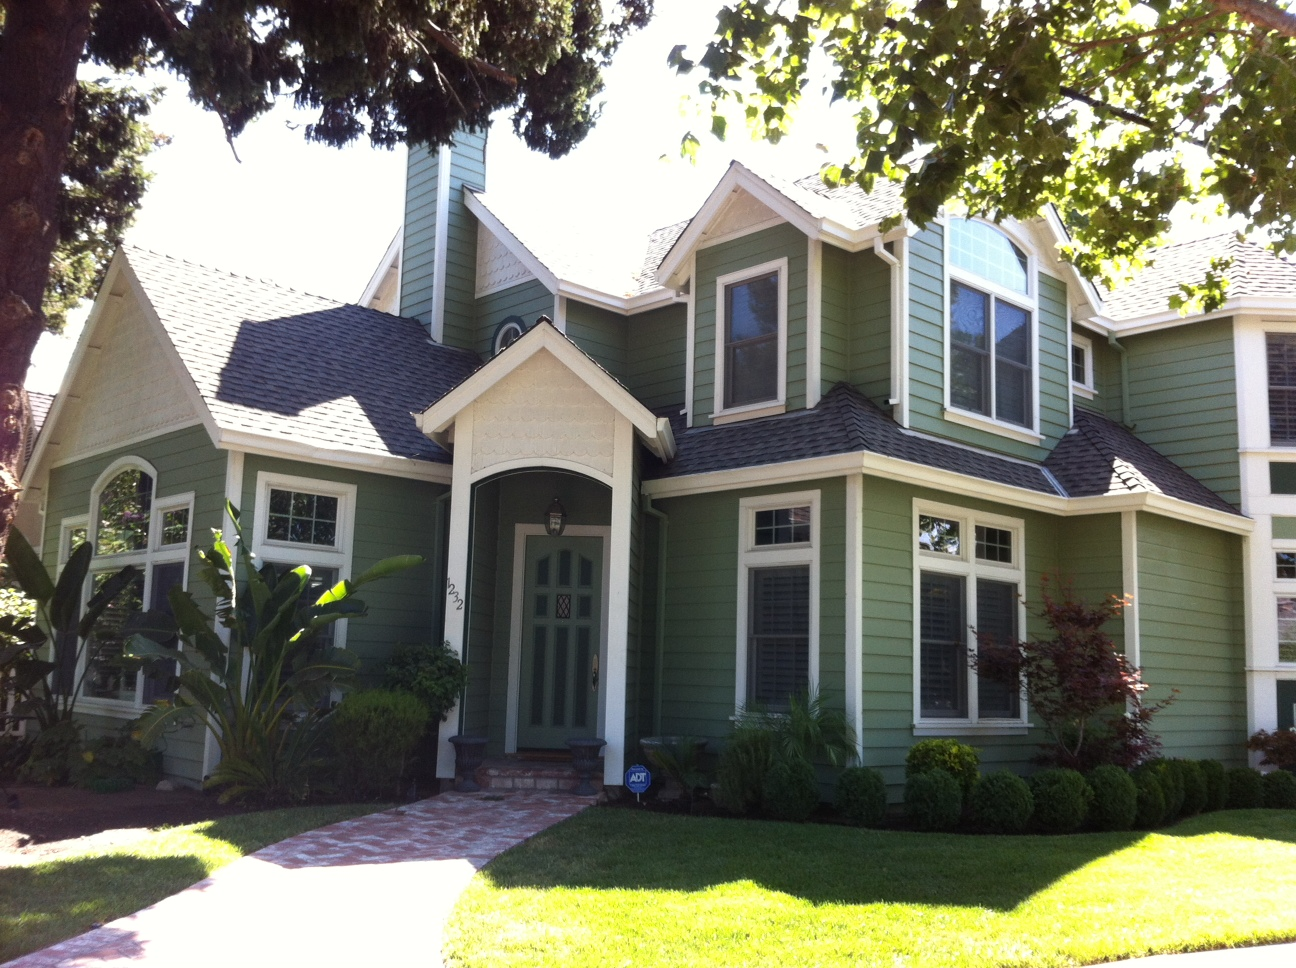 Extreme makeover flowers edition exterior house paint well it 39 s green - Exterior home painting pictures paint ...